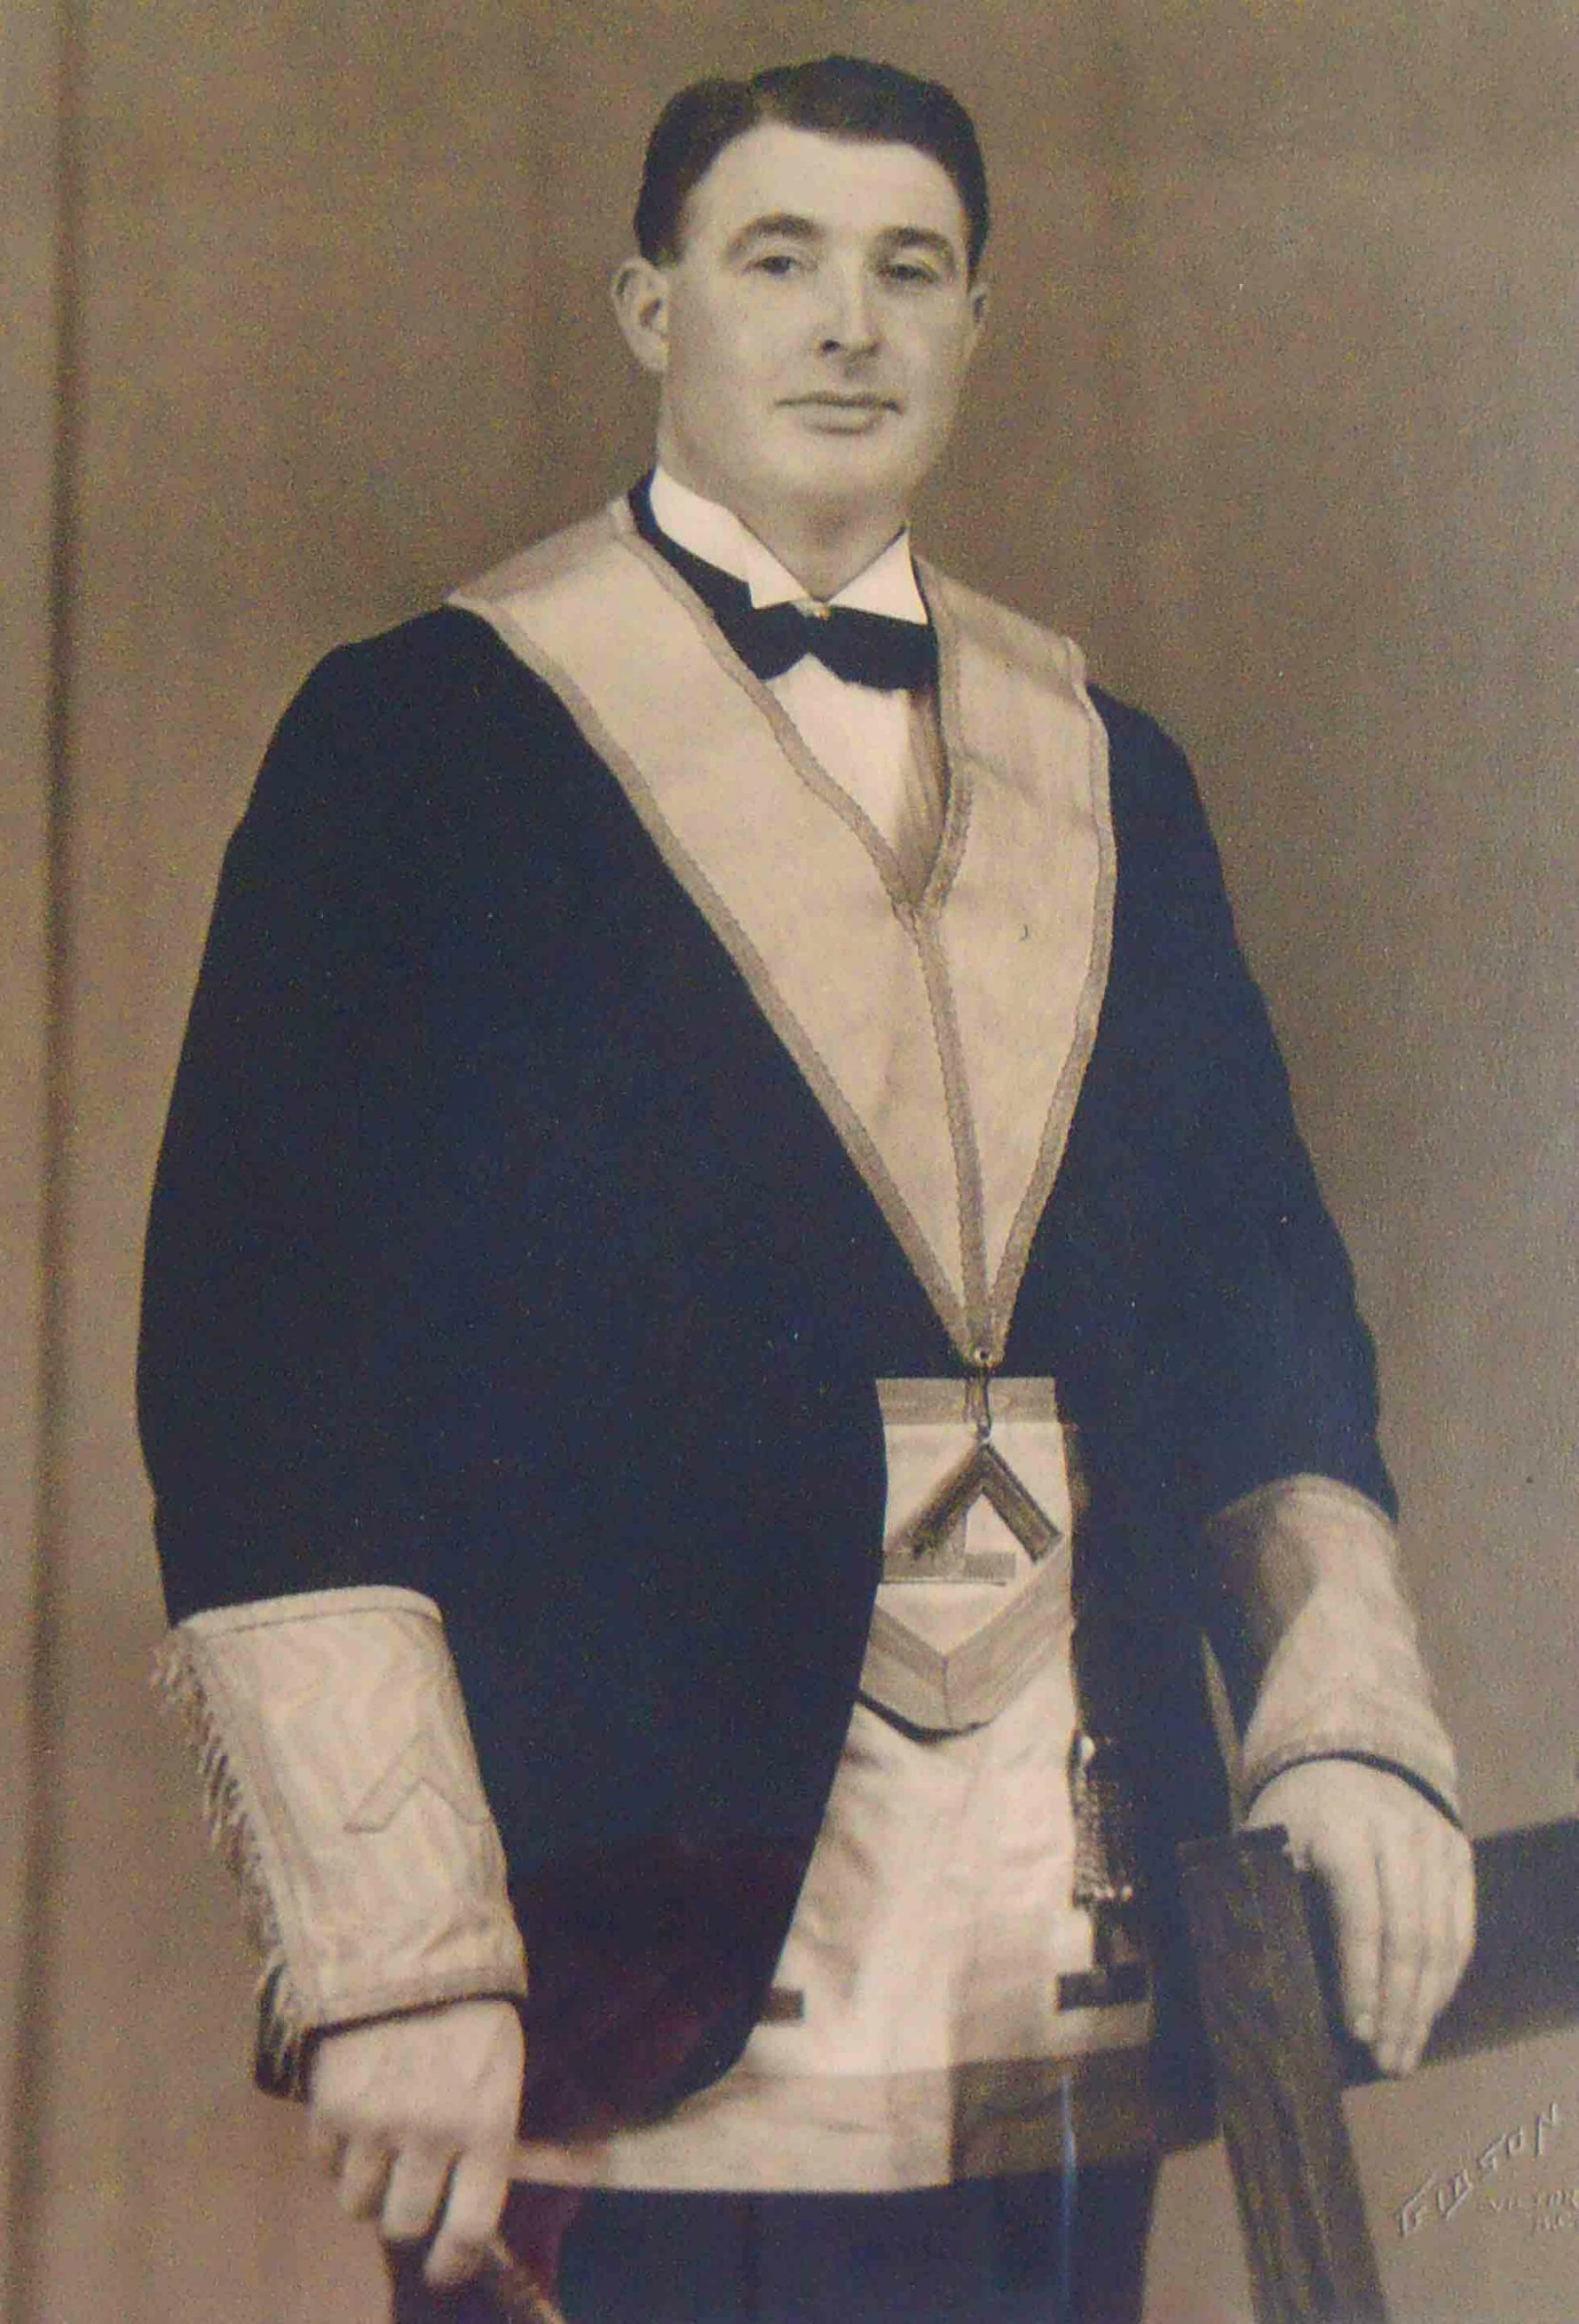 Claude Alfred John Green as Worshipful Master of Temple Lodge, No.33 in 1941